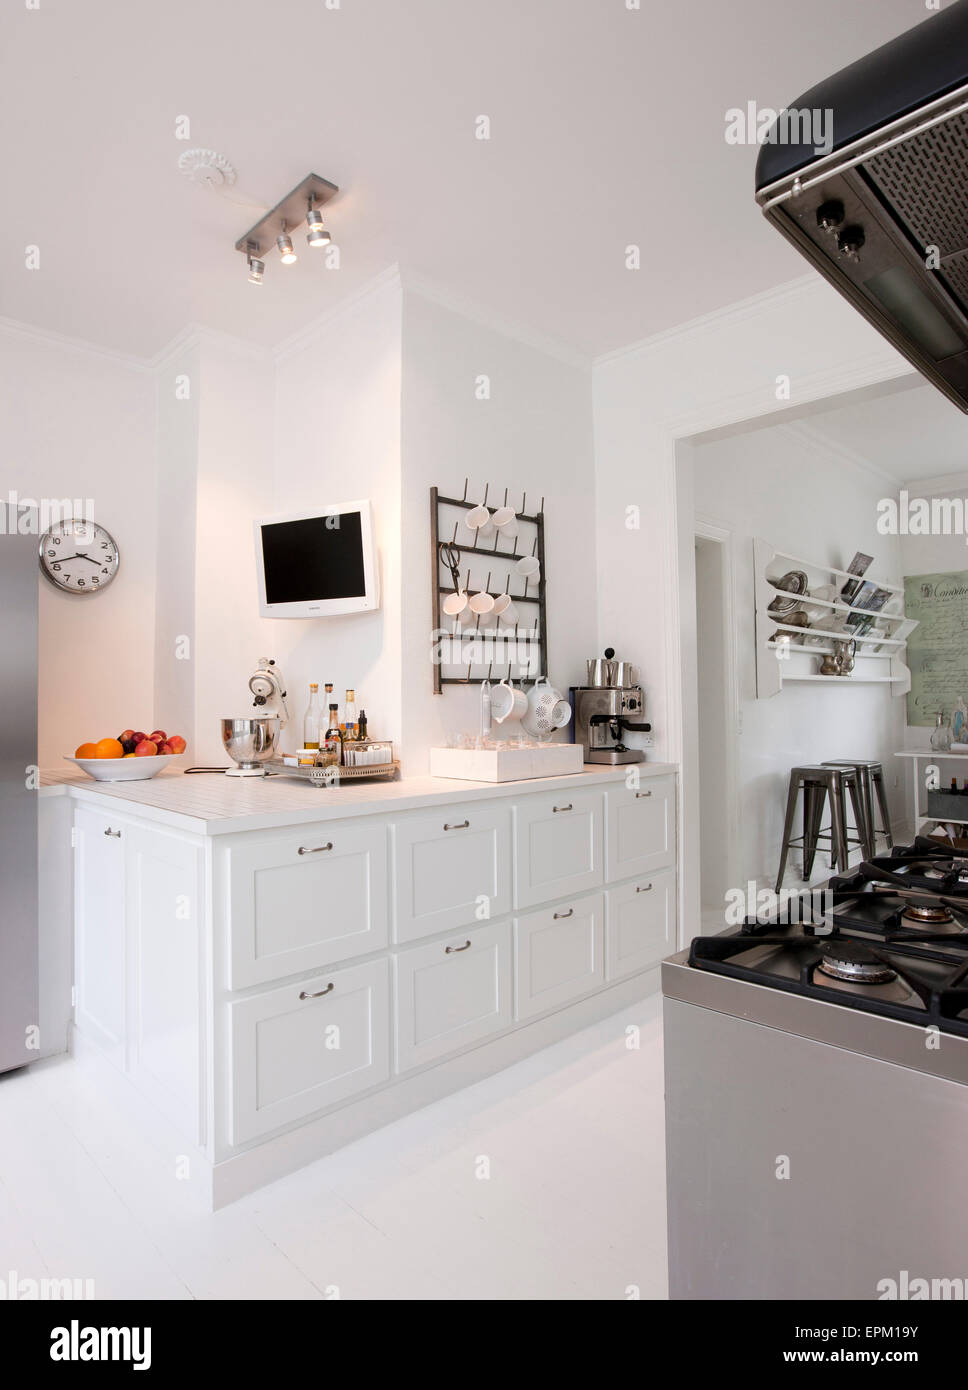 White Kitchen With Range Oven And Wall Mounted Tv In Hanne Davidsen Stock Photo Alamy